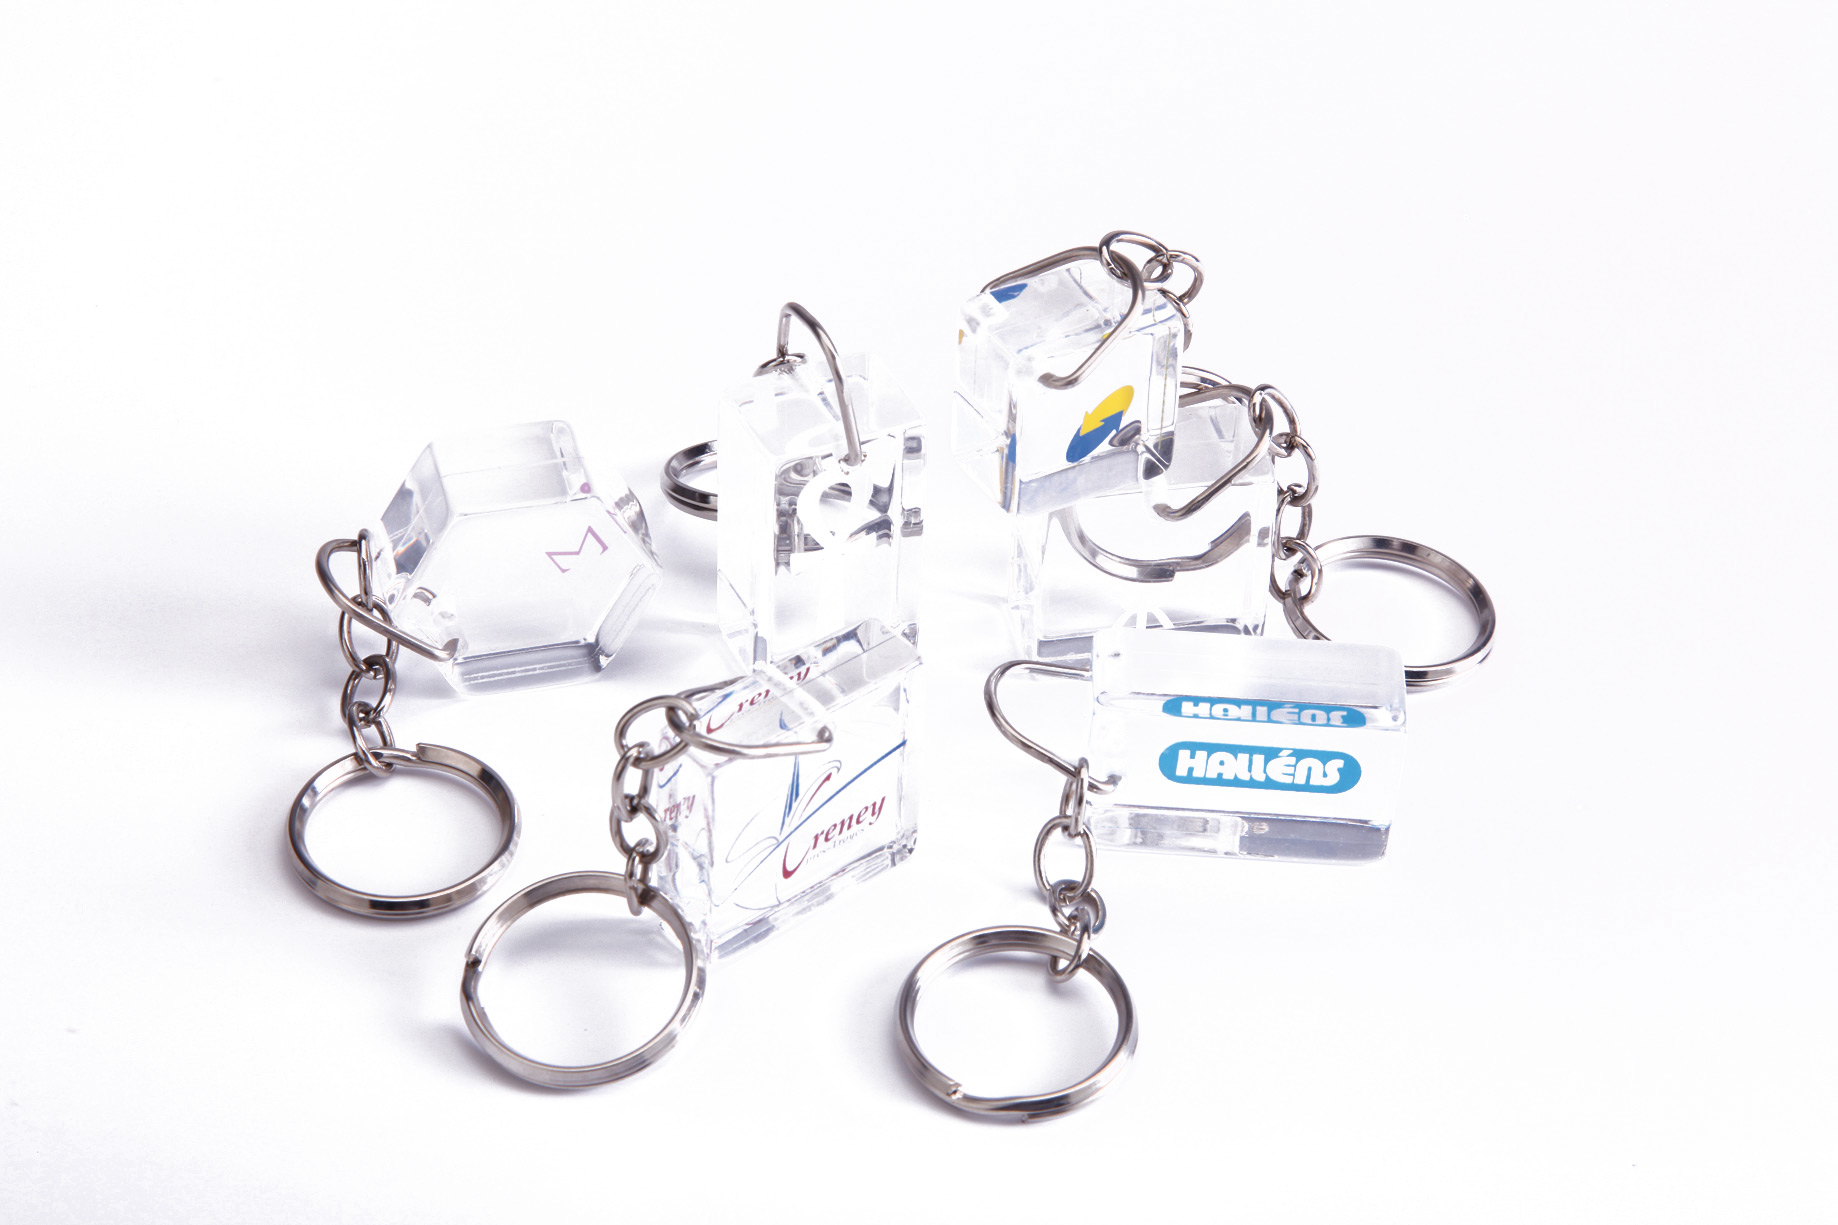 METACRISTAL keyrings